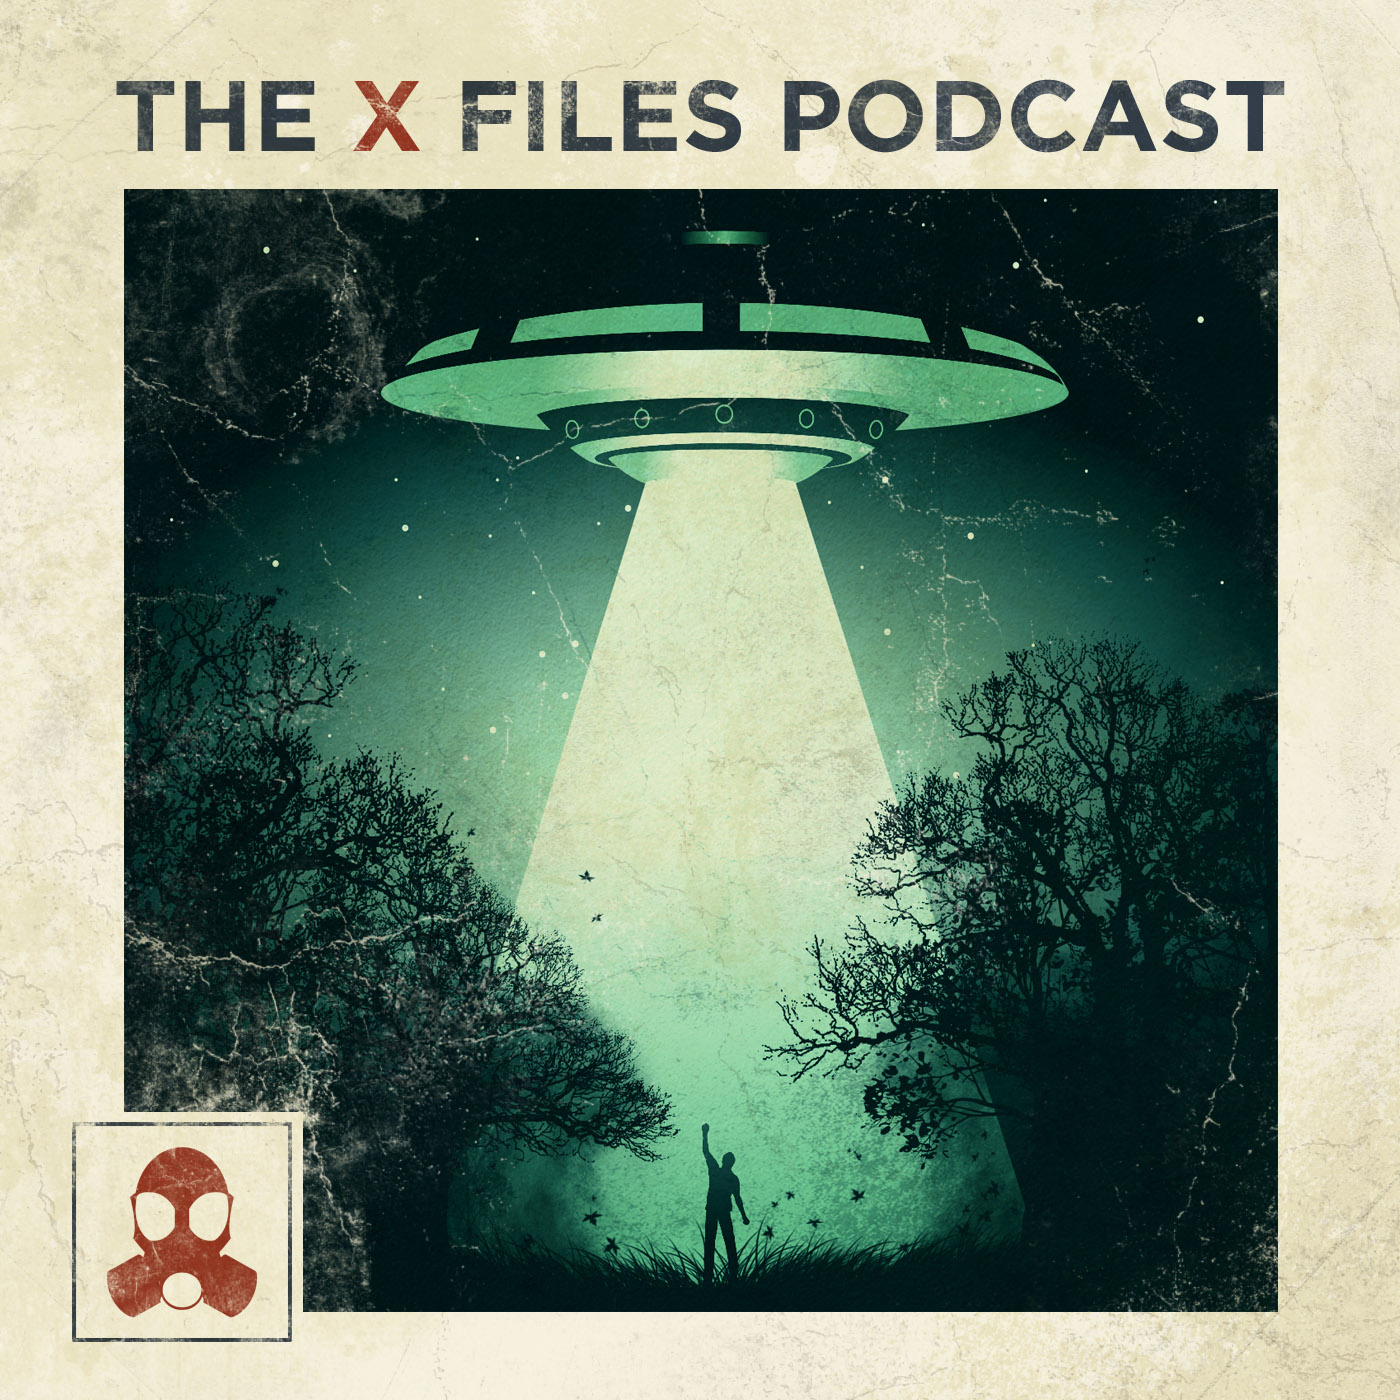 The X-Files Podcast show art